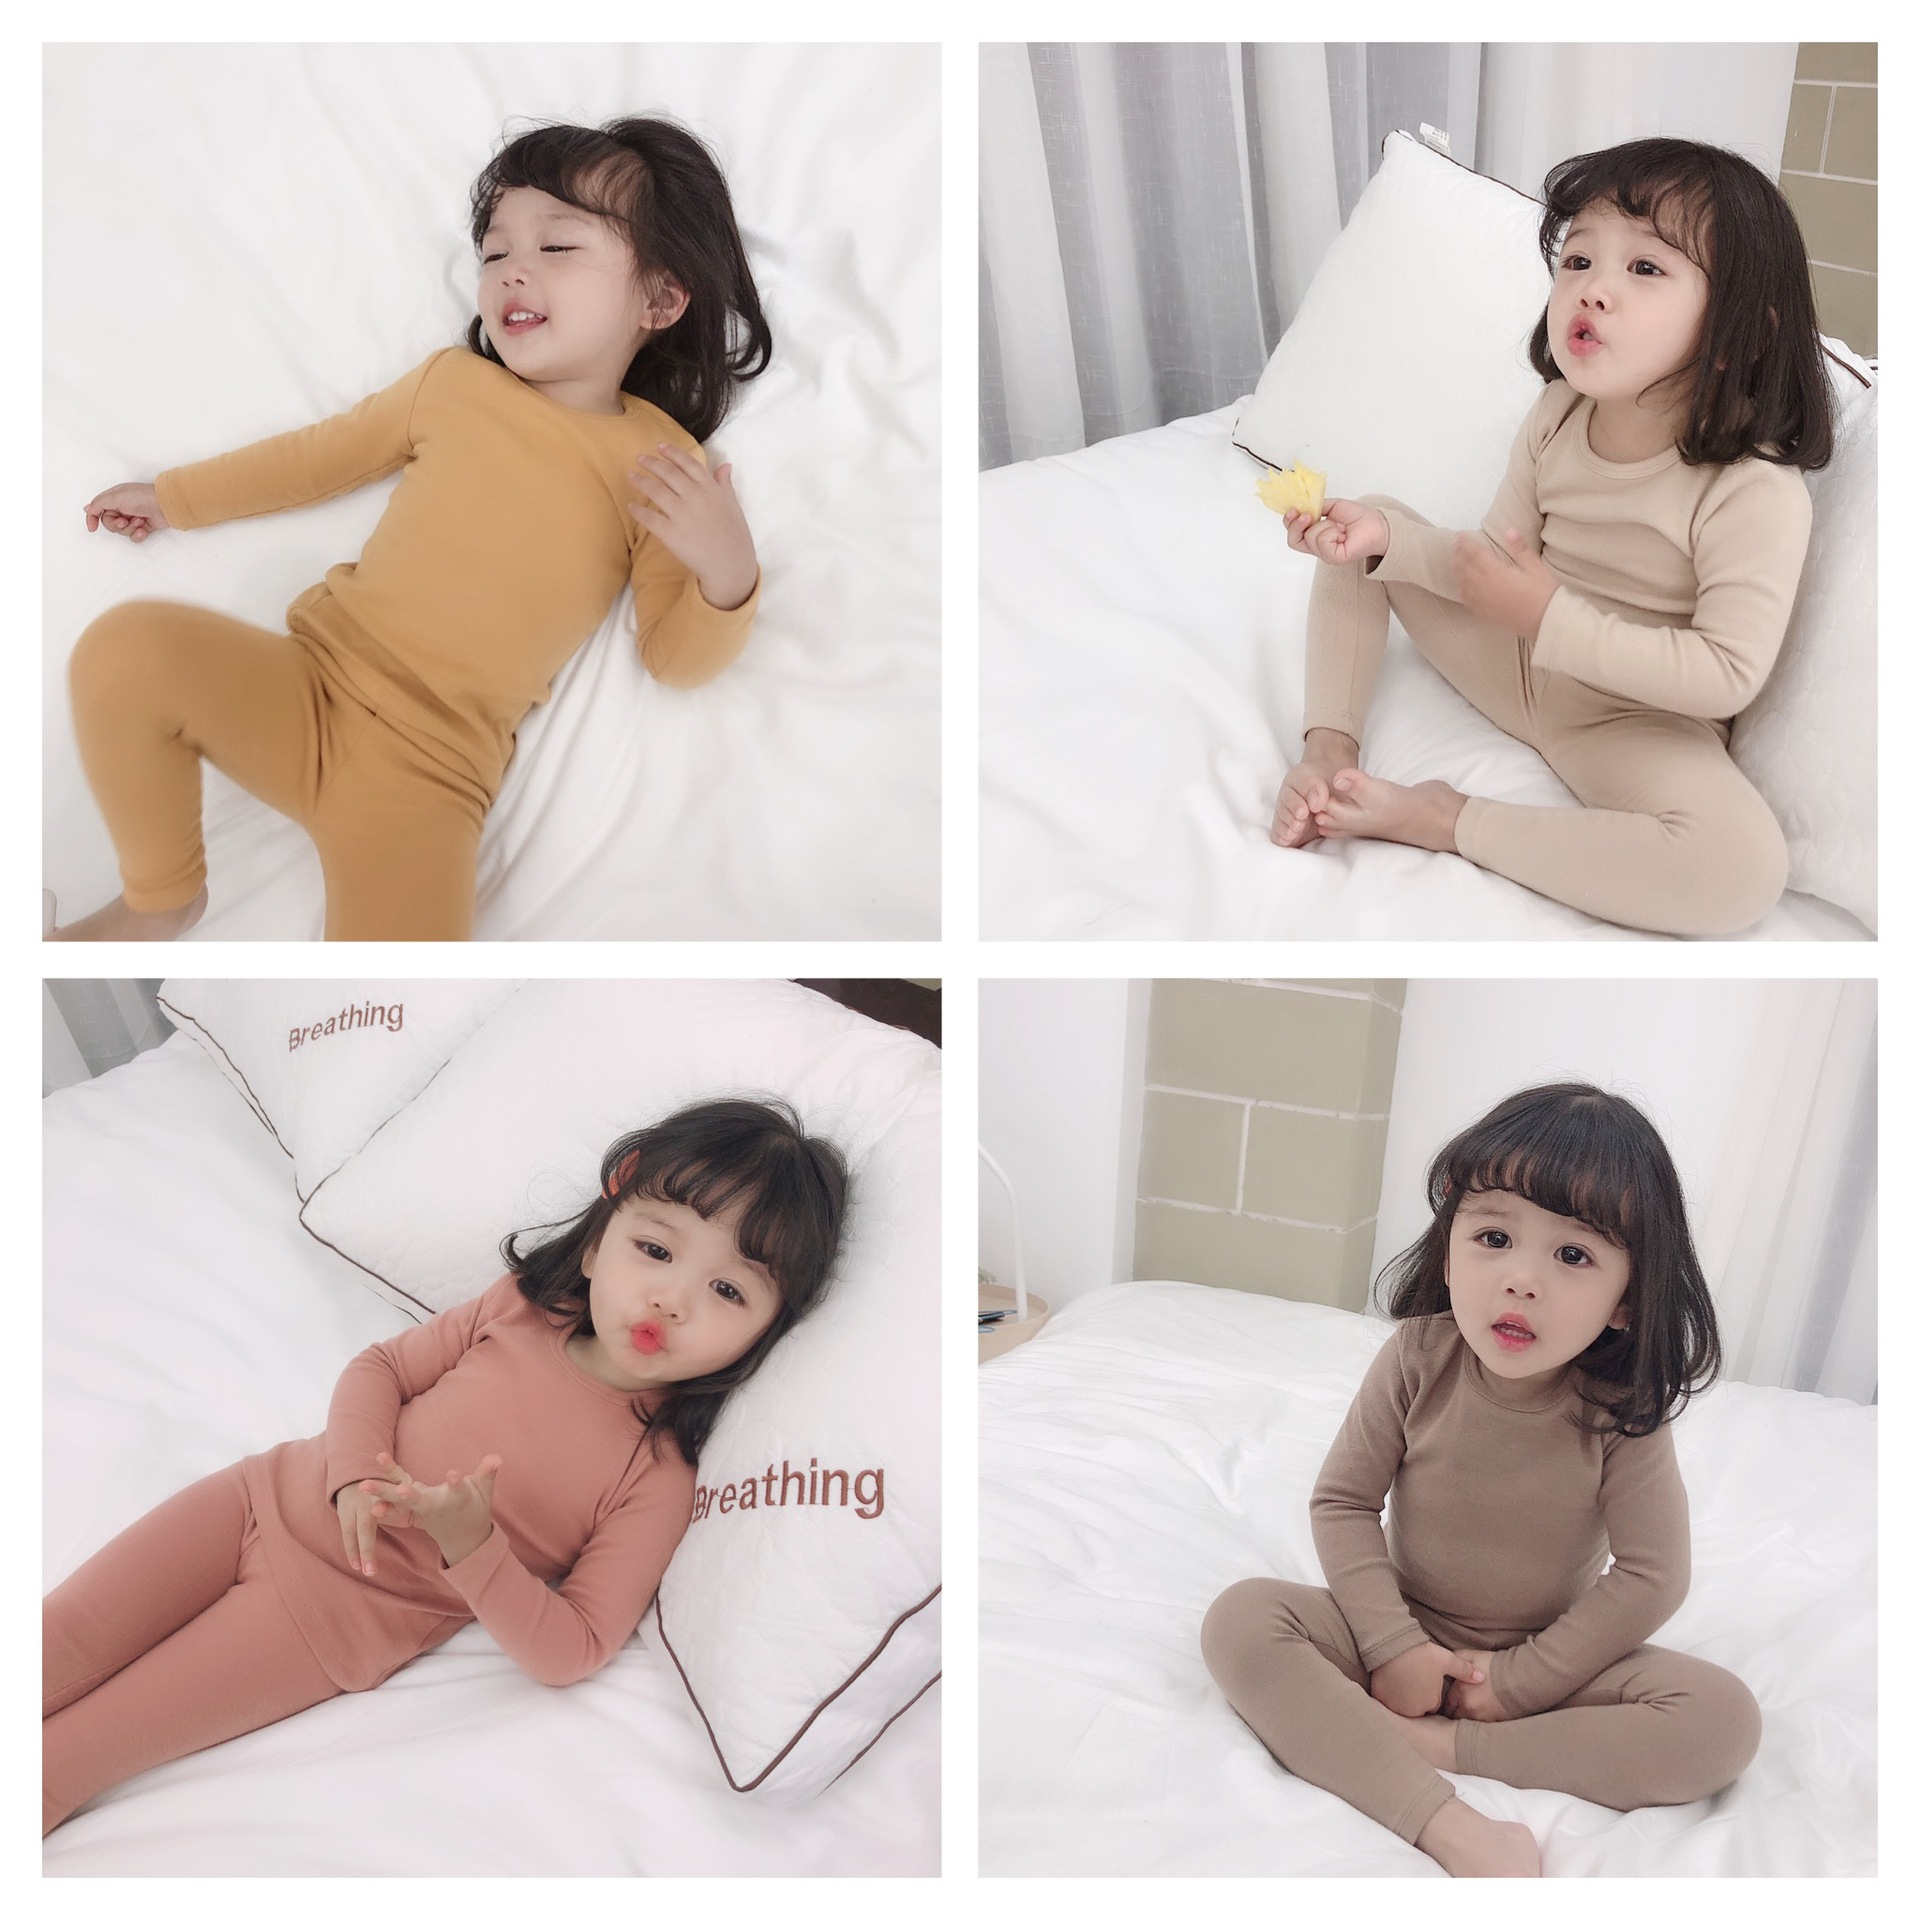 Spring 2009 New Pure Delicate Cotton Backside Shirt Two-piece Swimsuit Dwelling Swimsuit Women Clothes Units Child Lady Garments Clothes Units, Low cost Clothes Units, Spring 2009 New Pure Delicate...